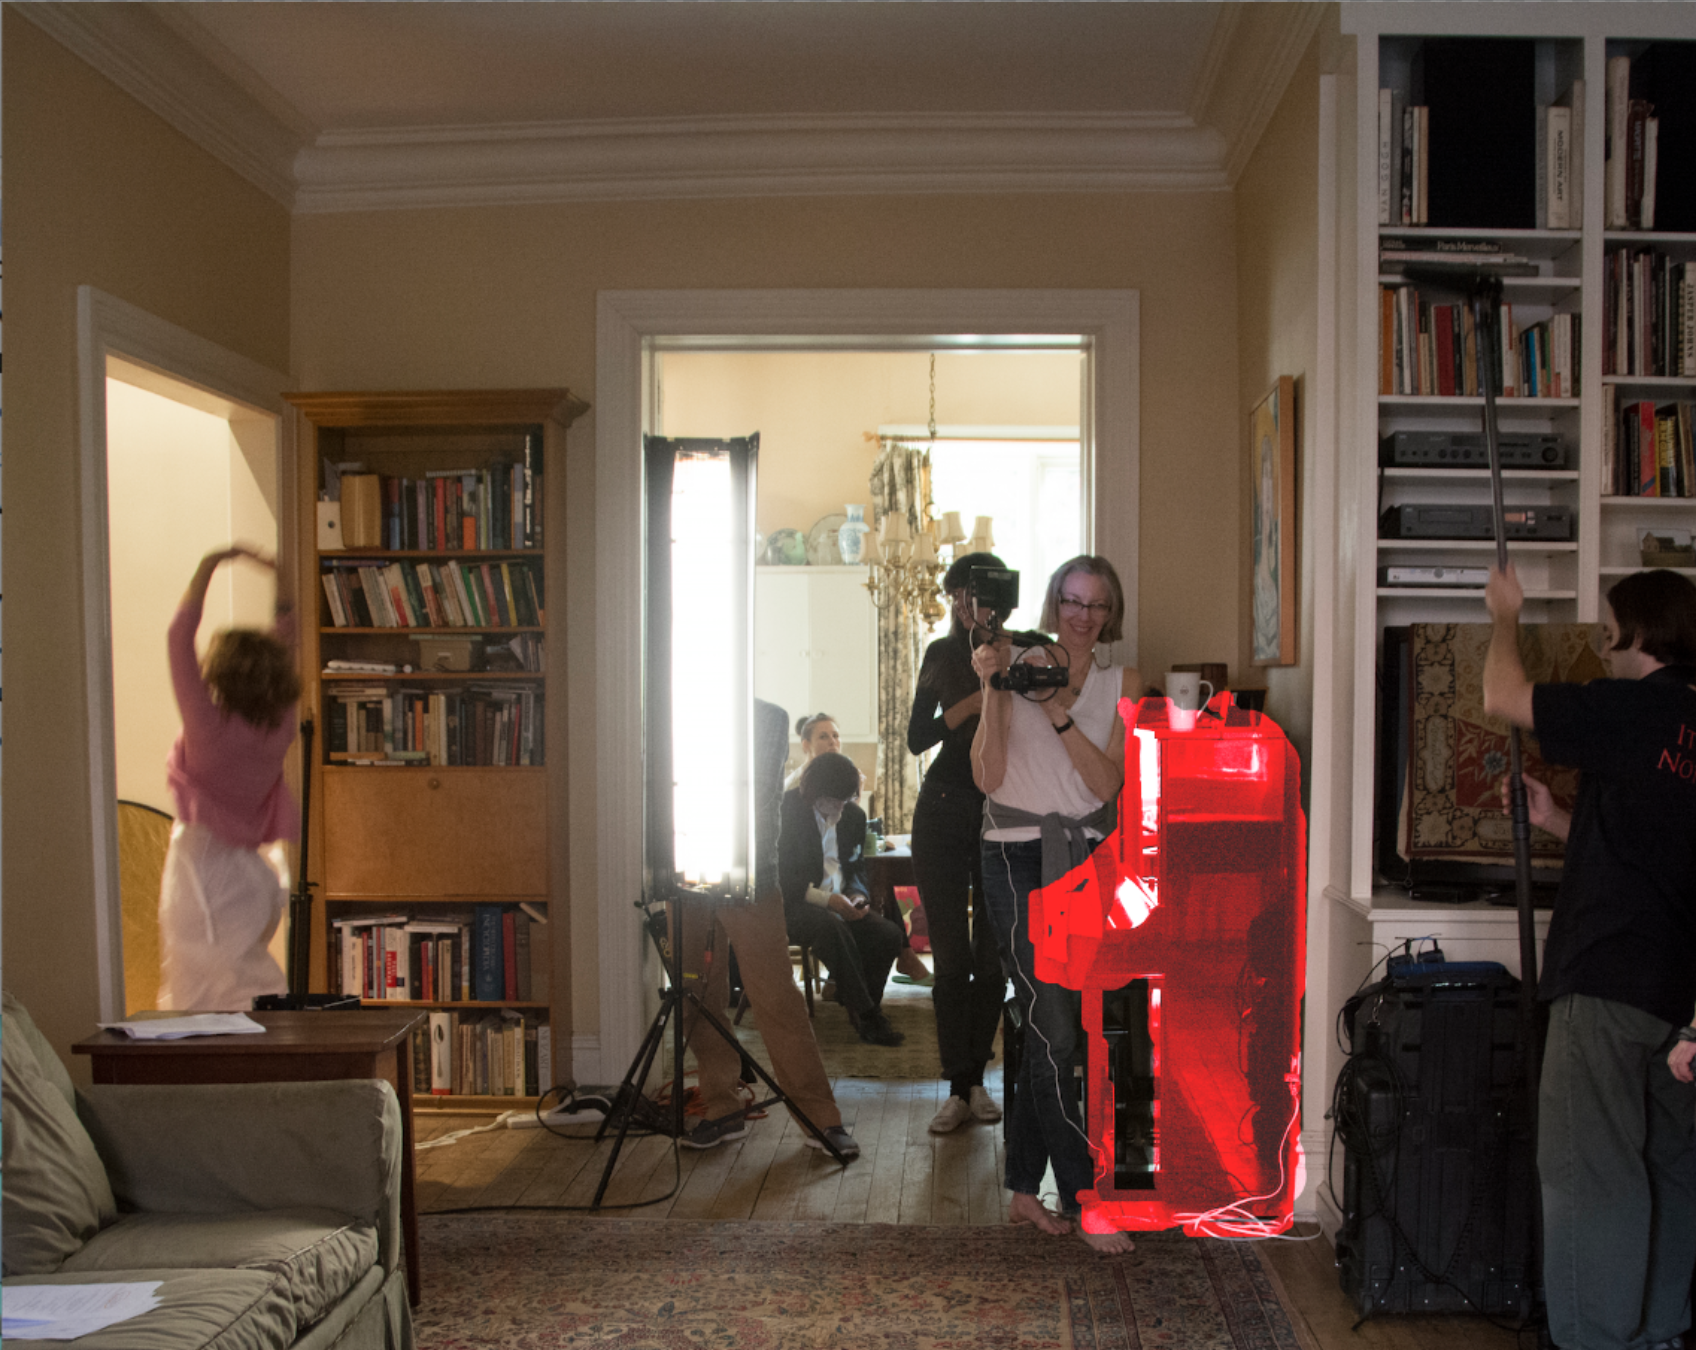 The only picture I could find of the living room which shows the piano (partially obscured but highlighted) is from the shoot of Season 3. (L to R Danusia Trevino, Everett Quinton, Jennifer Sklias-Gahan, Kira Cecilia, me, The Piano, Chris Leone) Photo by Karen Sanderson